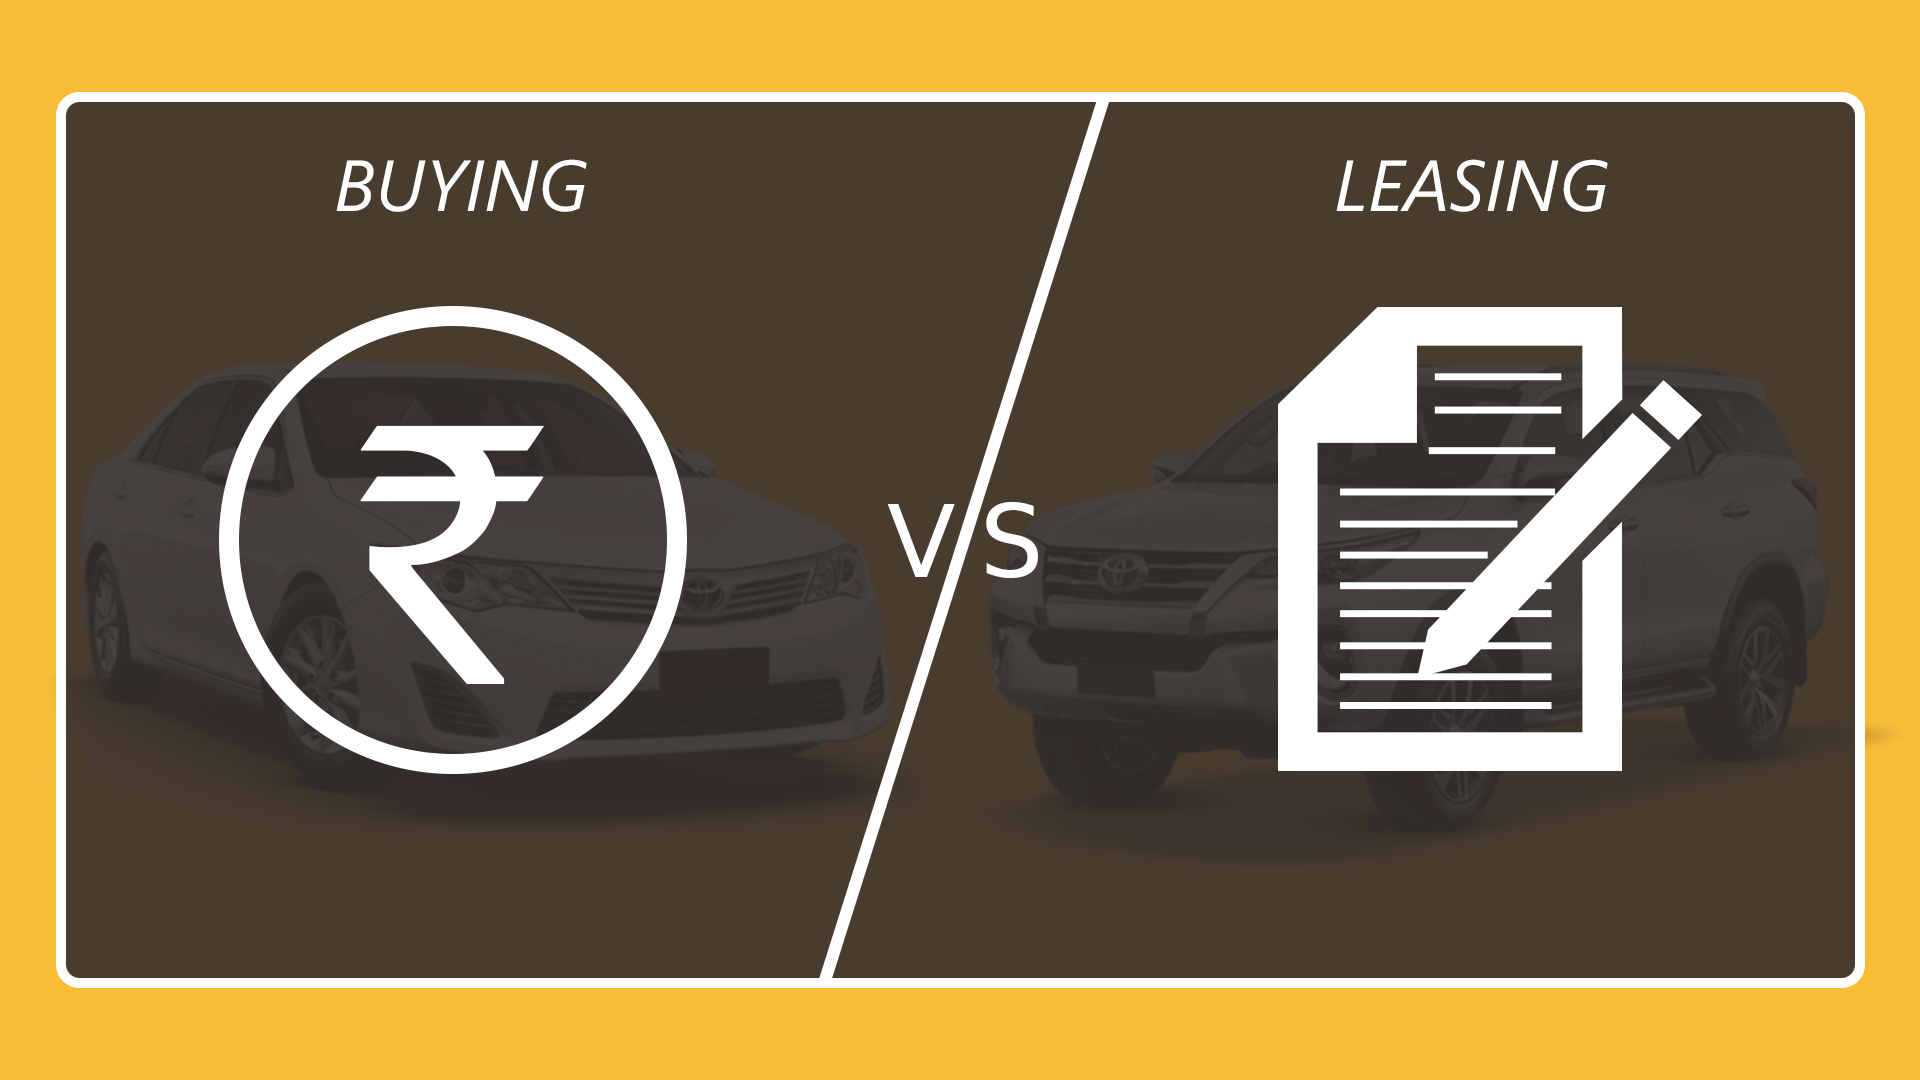 Buying vs Leasing: Which Is Really Better [Infographic]